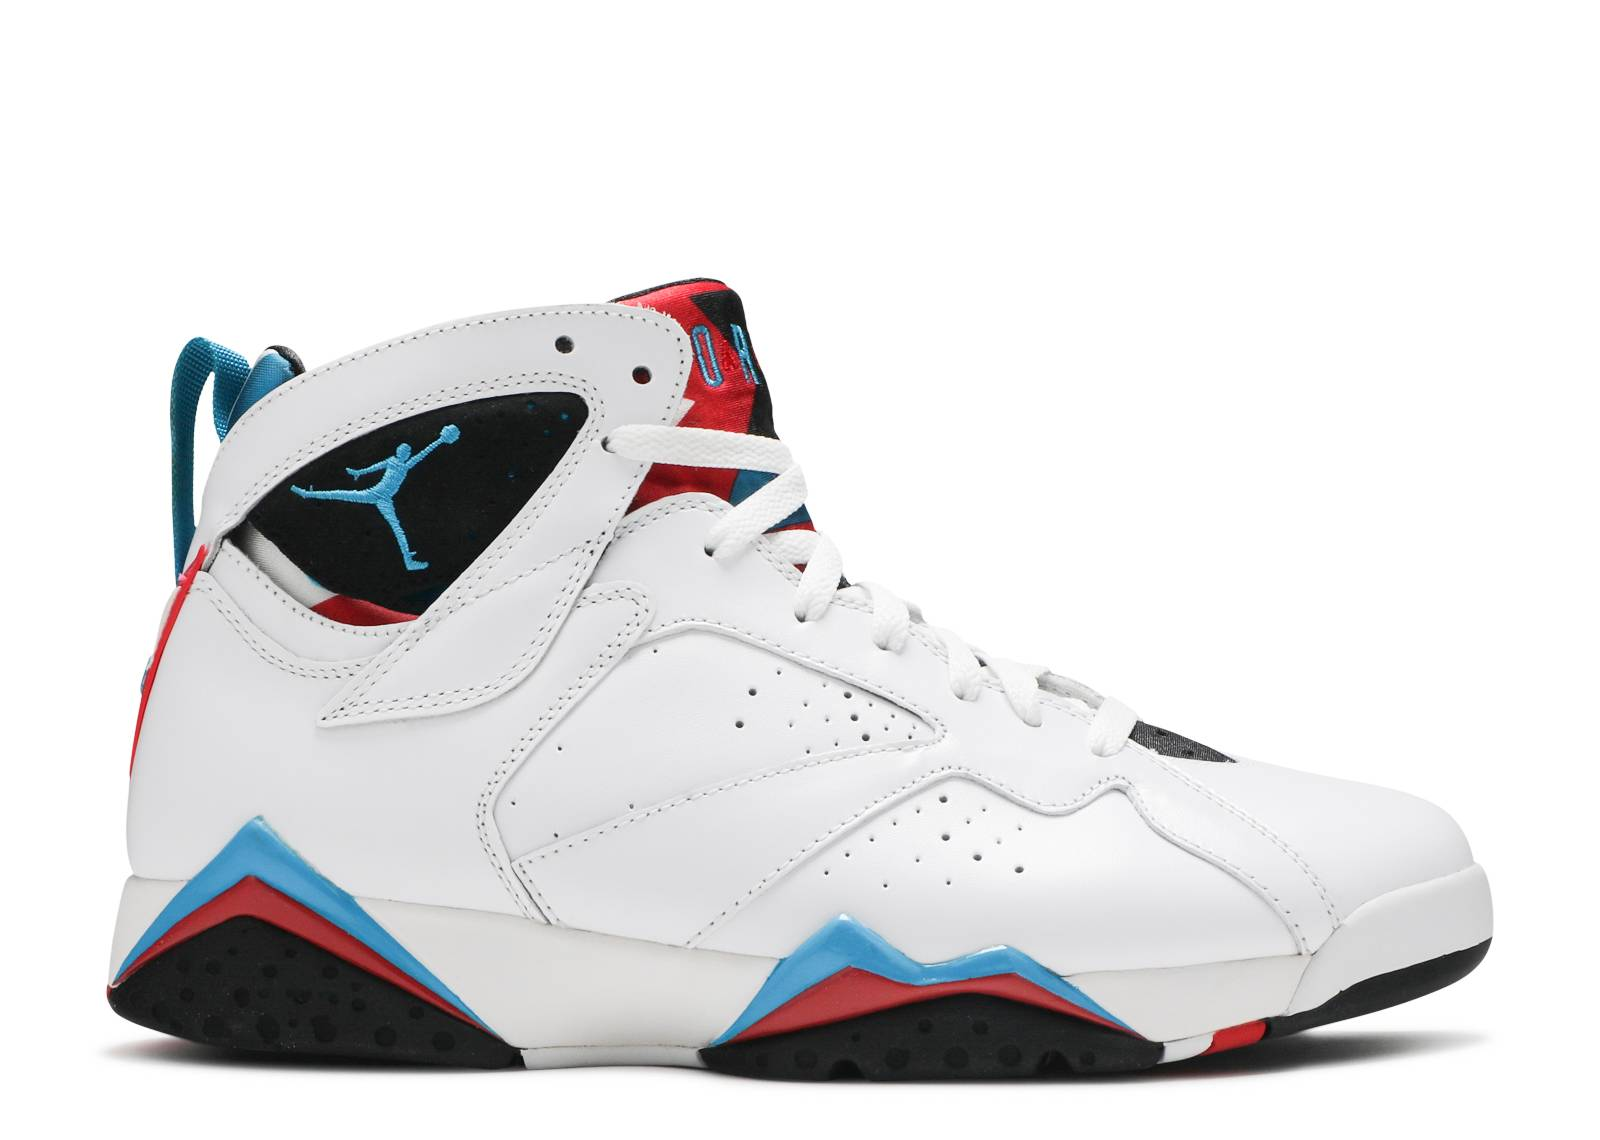 air jordan 7 retro white/orion blue-black-infrared